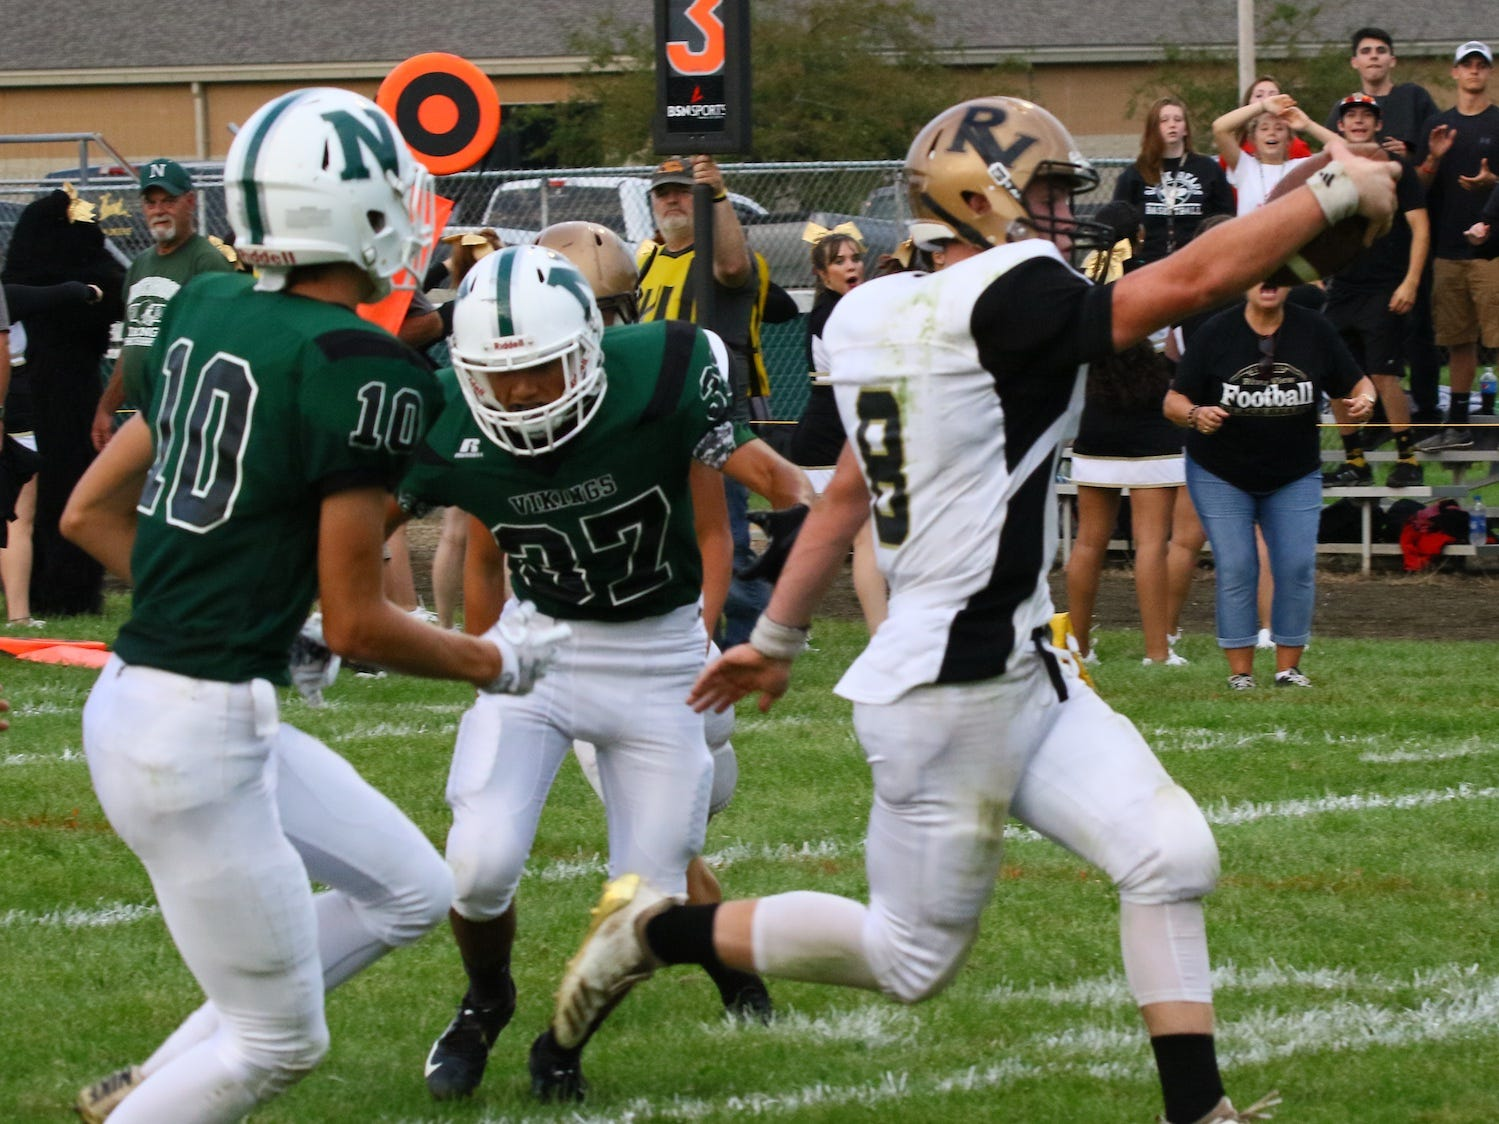 River View quarterback Gannon Unger hits pay dirt against the Vikings. The Black Bear junior led the attack against Northridge at the Vikings home stadium to start the 2018 season. River View won 30-13 on the road.